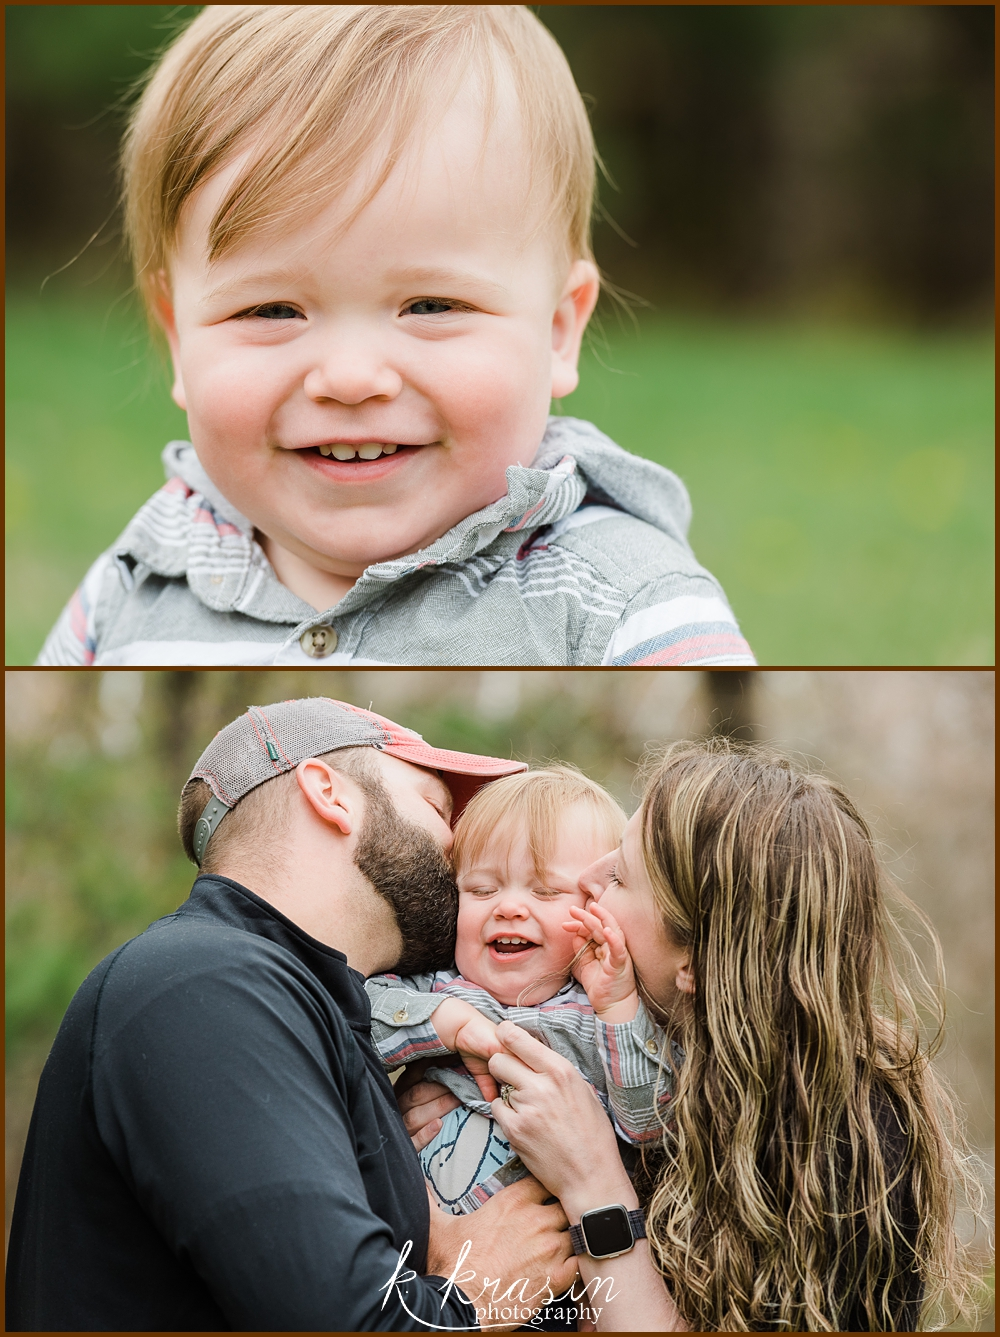 Photo collage of one year old boy and boy with parents kissing cheeks